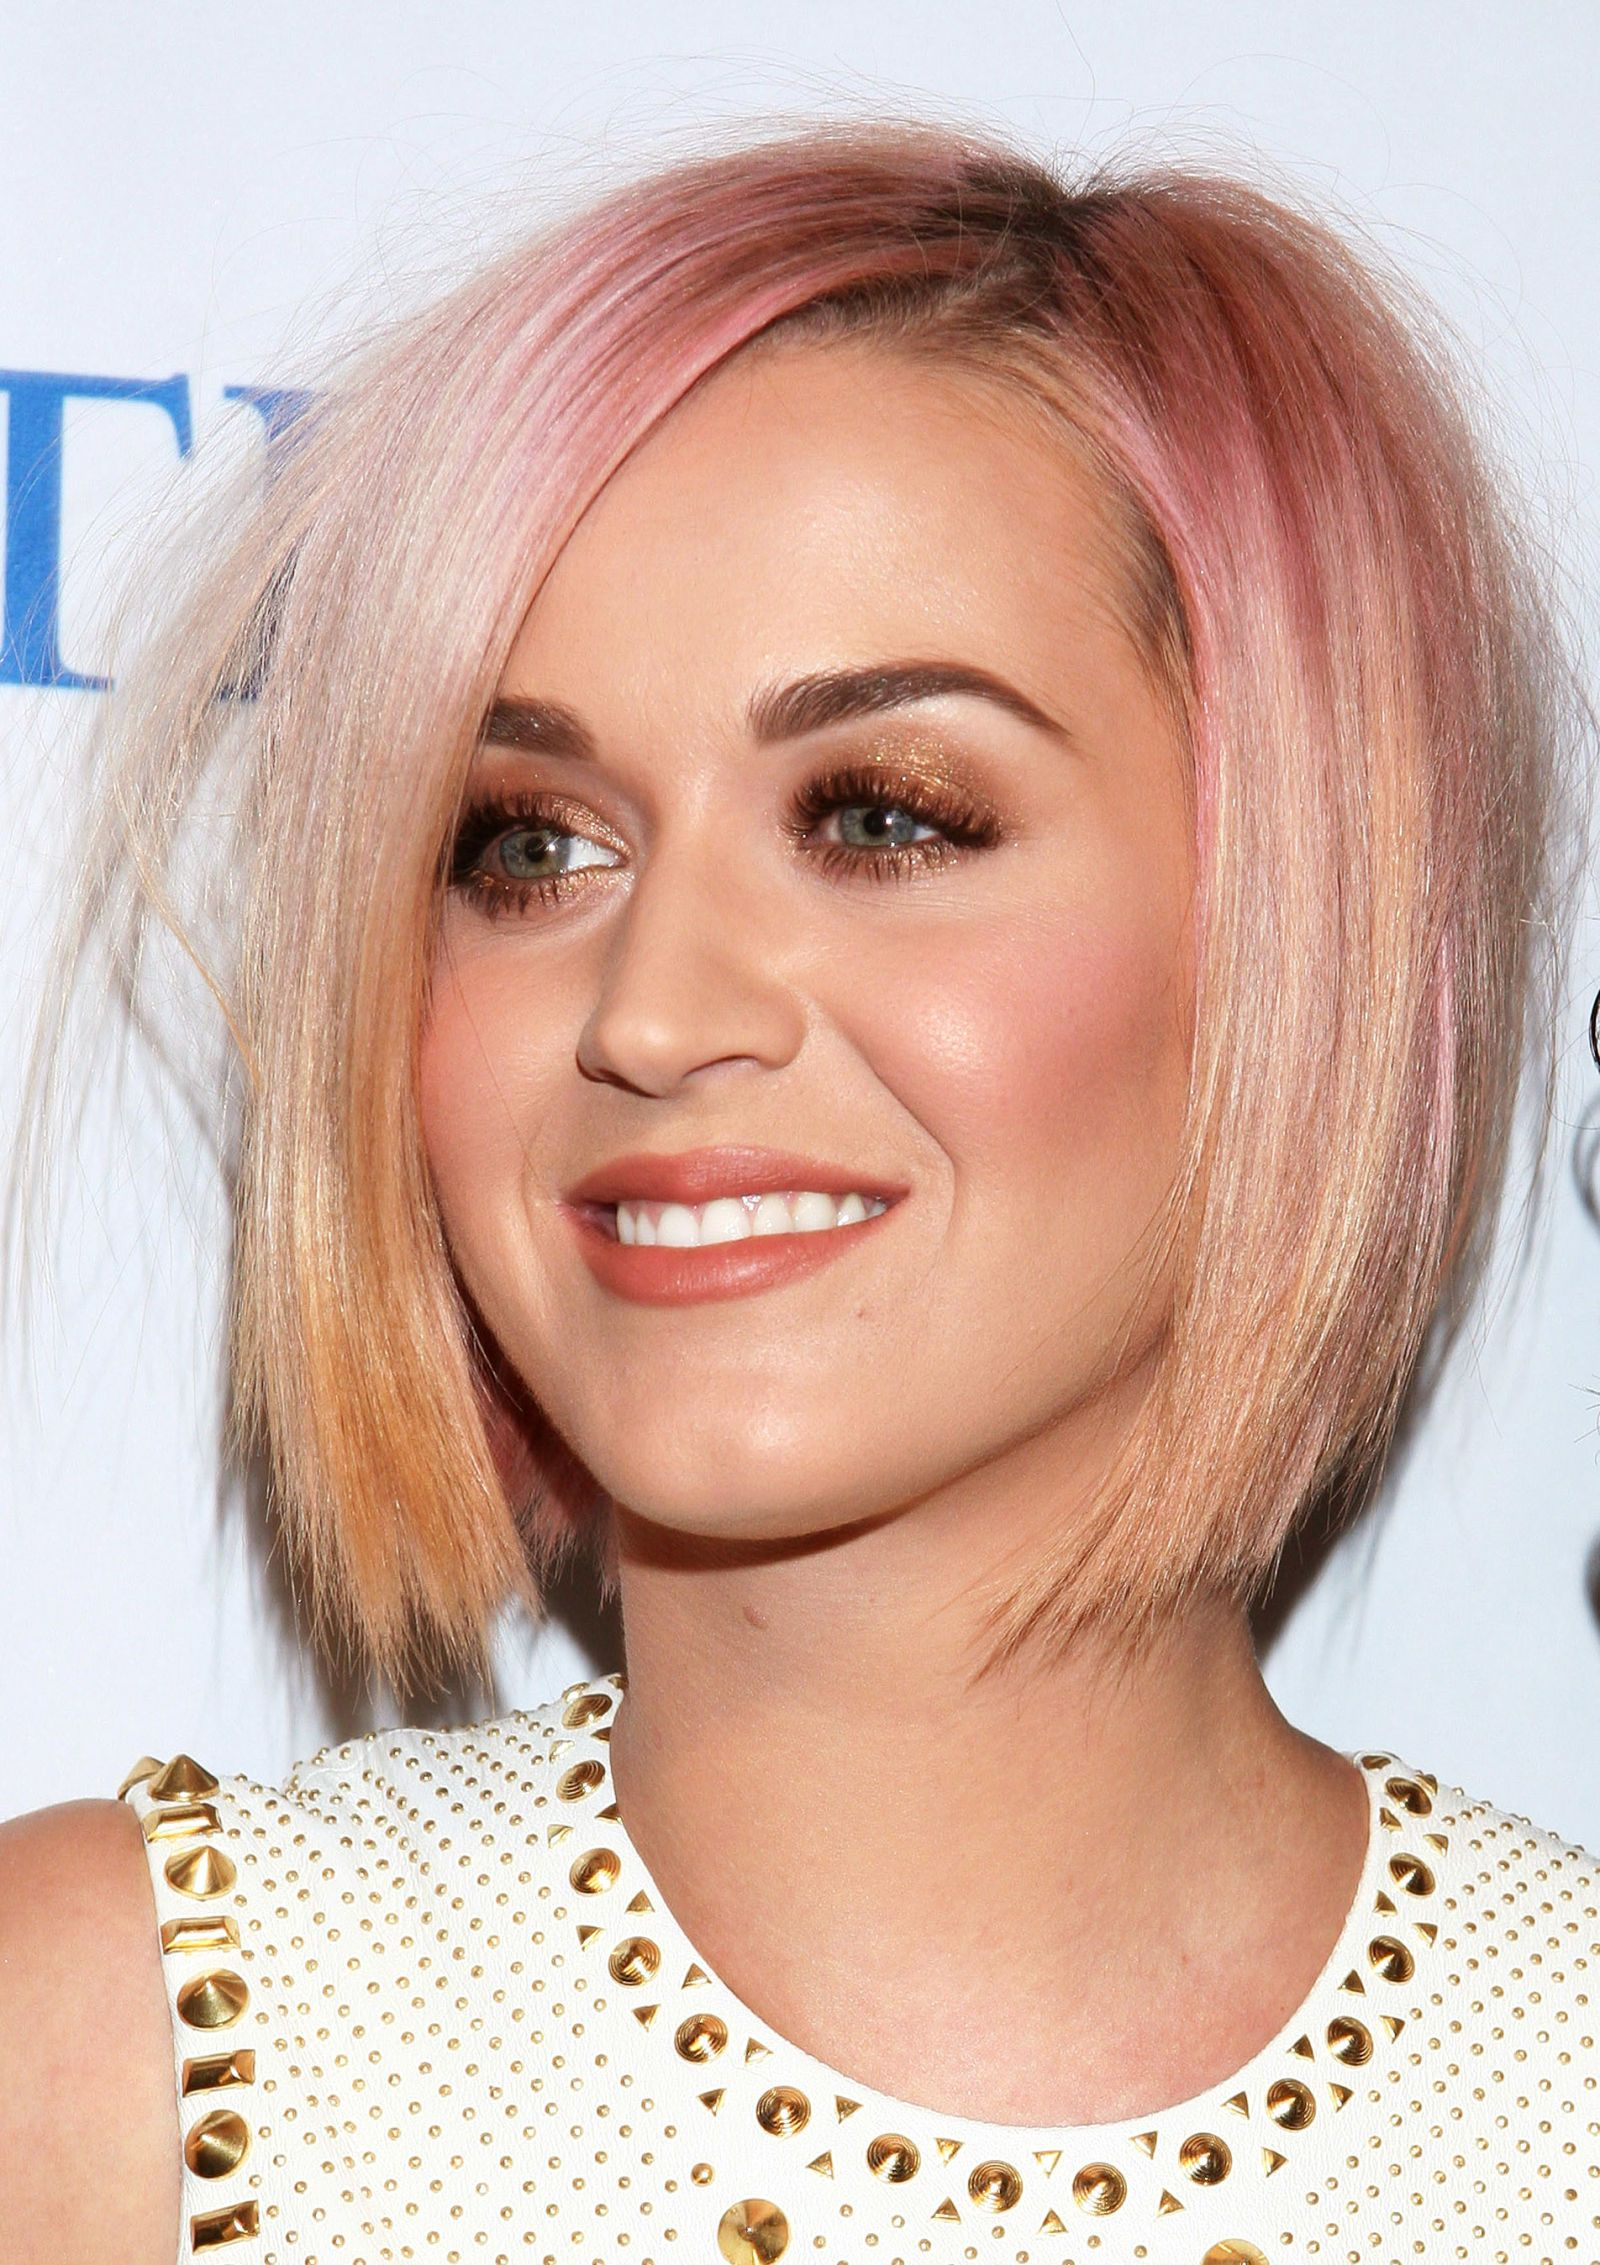 Rose gold hair inspiration for your dreamiest hair colour ever